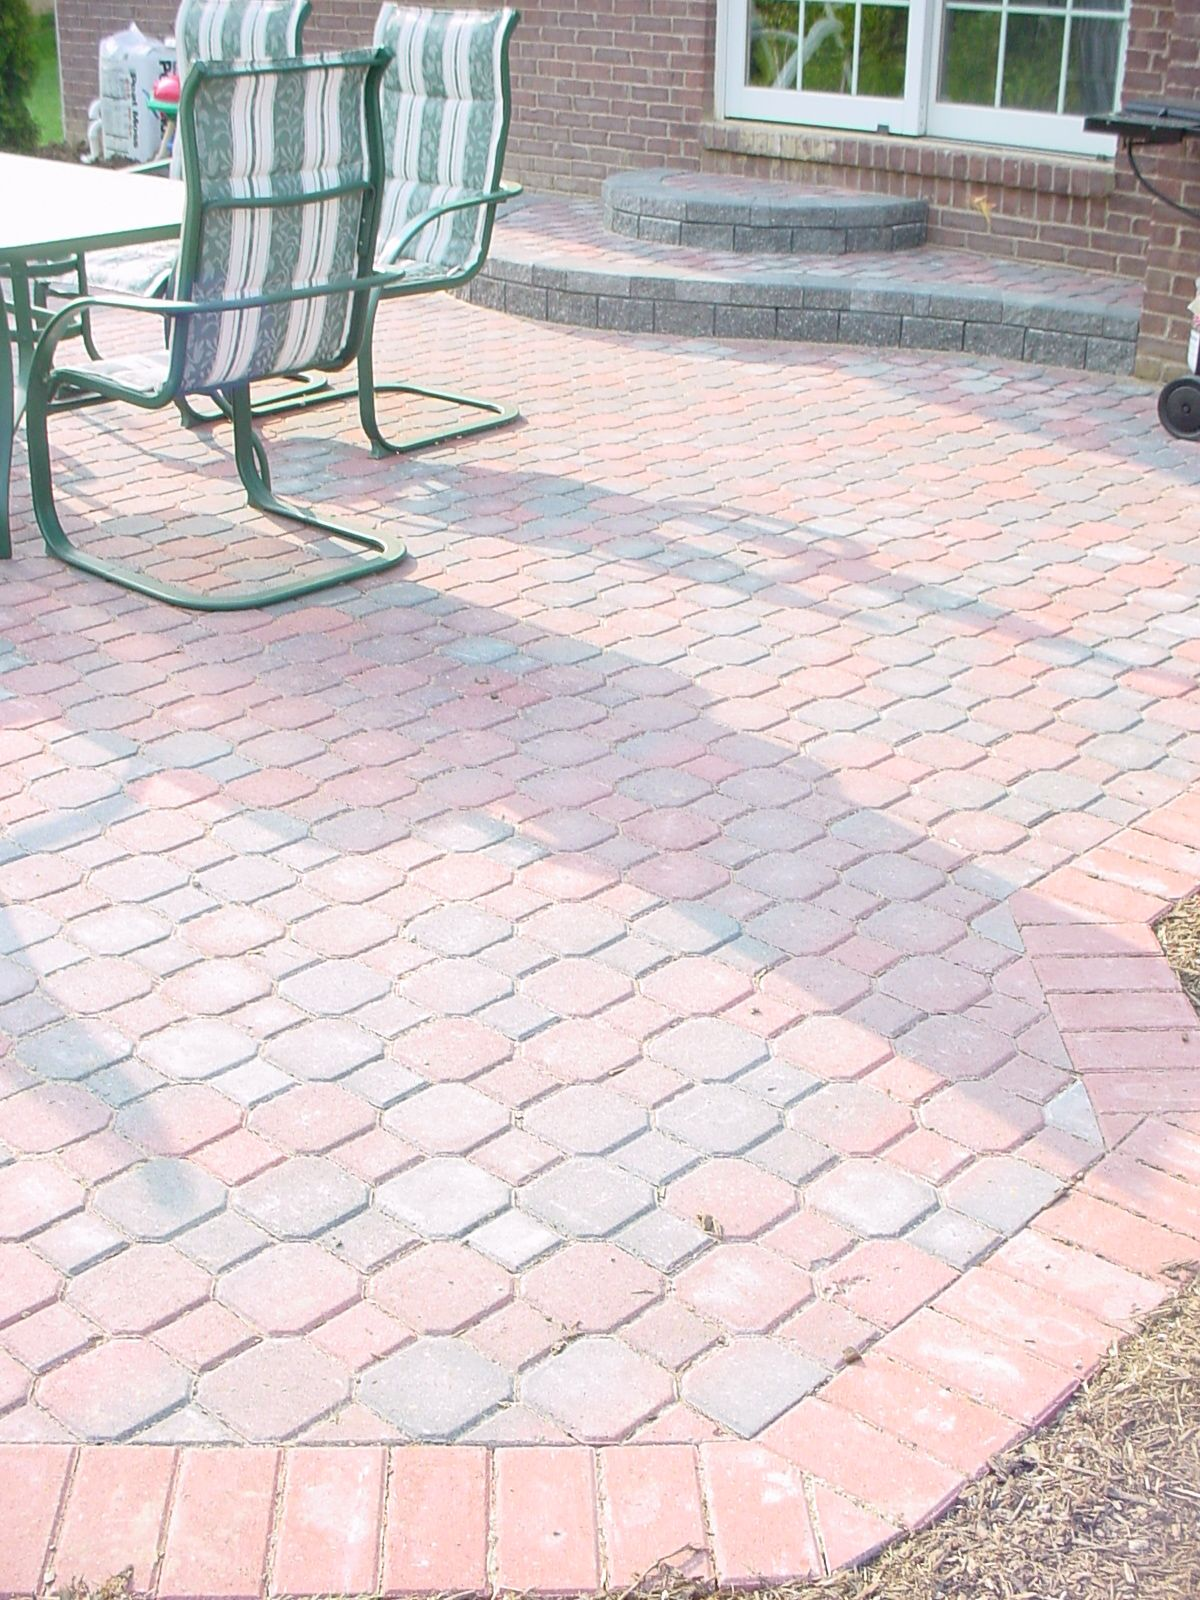 Uni Decor Pavers unilock brick pavers uni-decor style. | brick pavers | pinterest